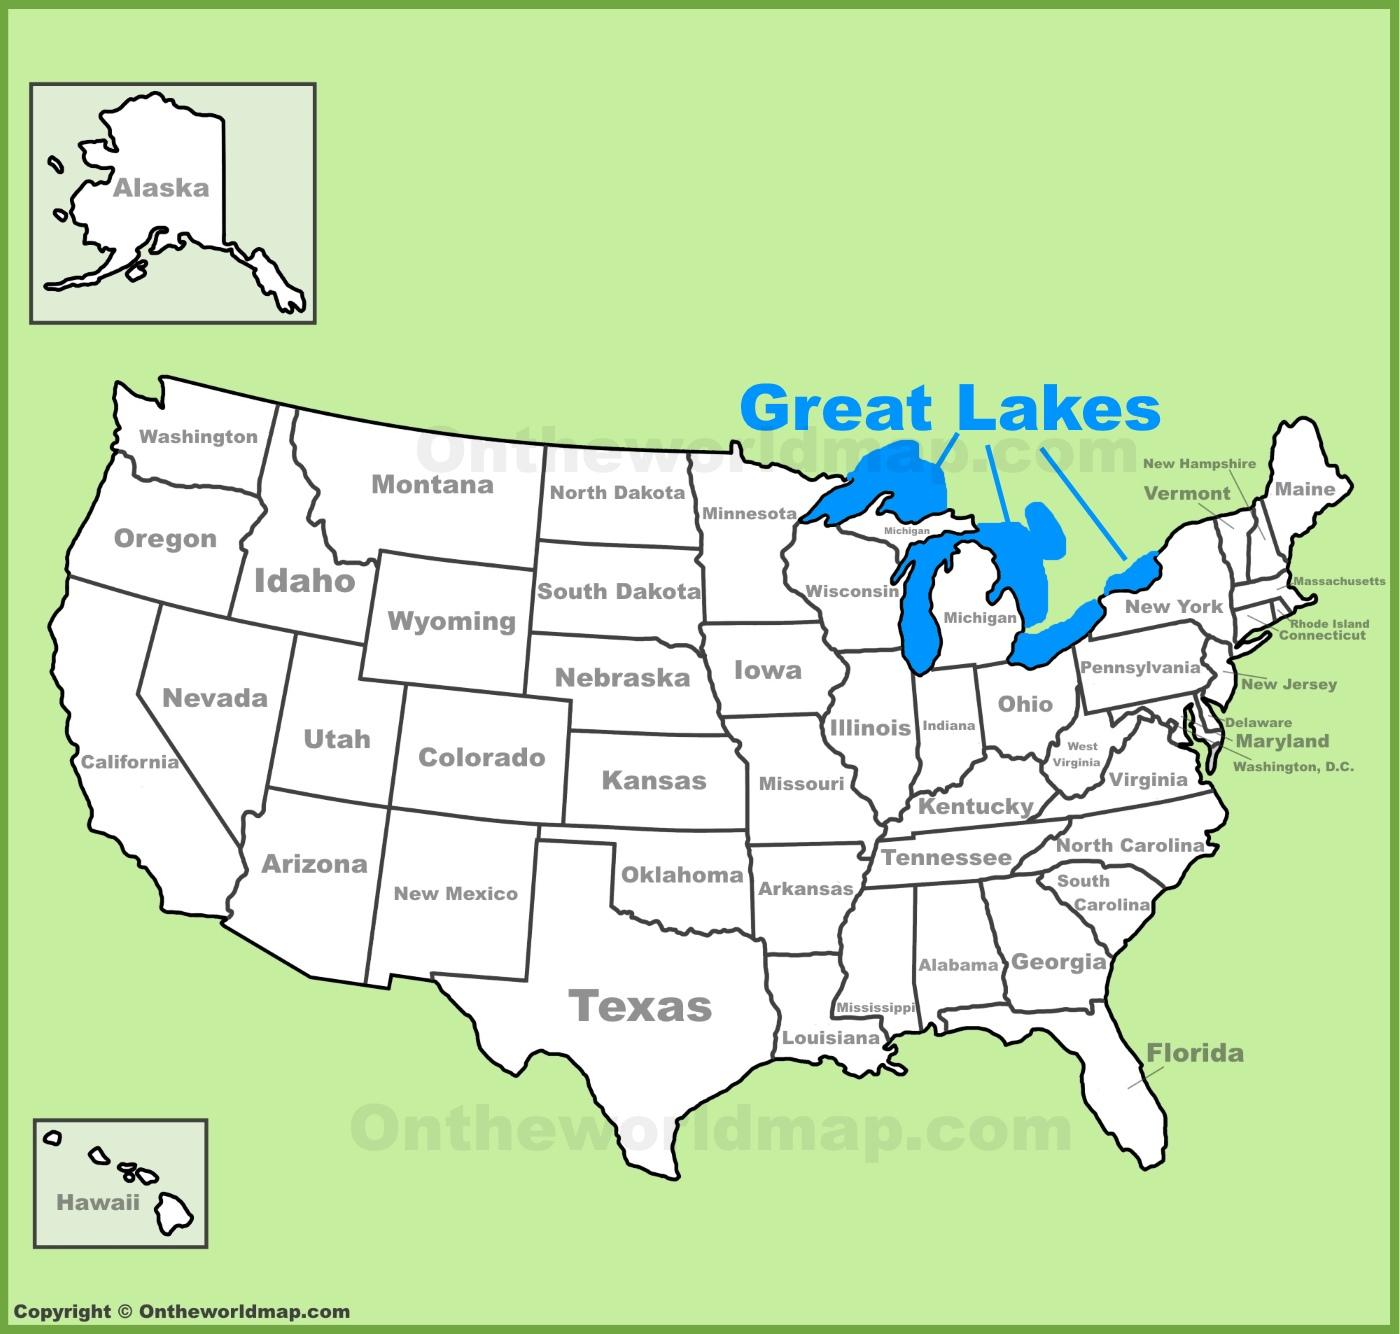 Great Lakes Maps Maps Of Great Lakes - Great-lakes-on-the-us-map